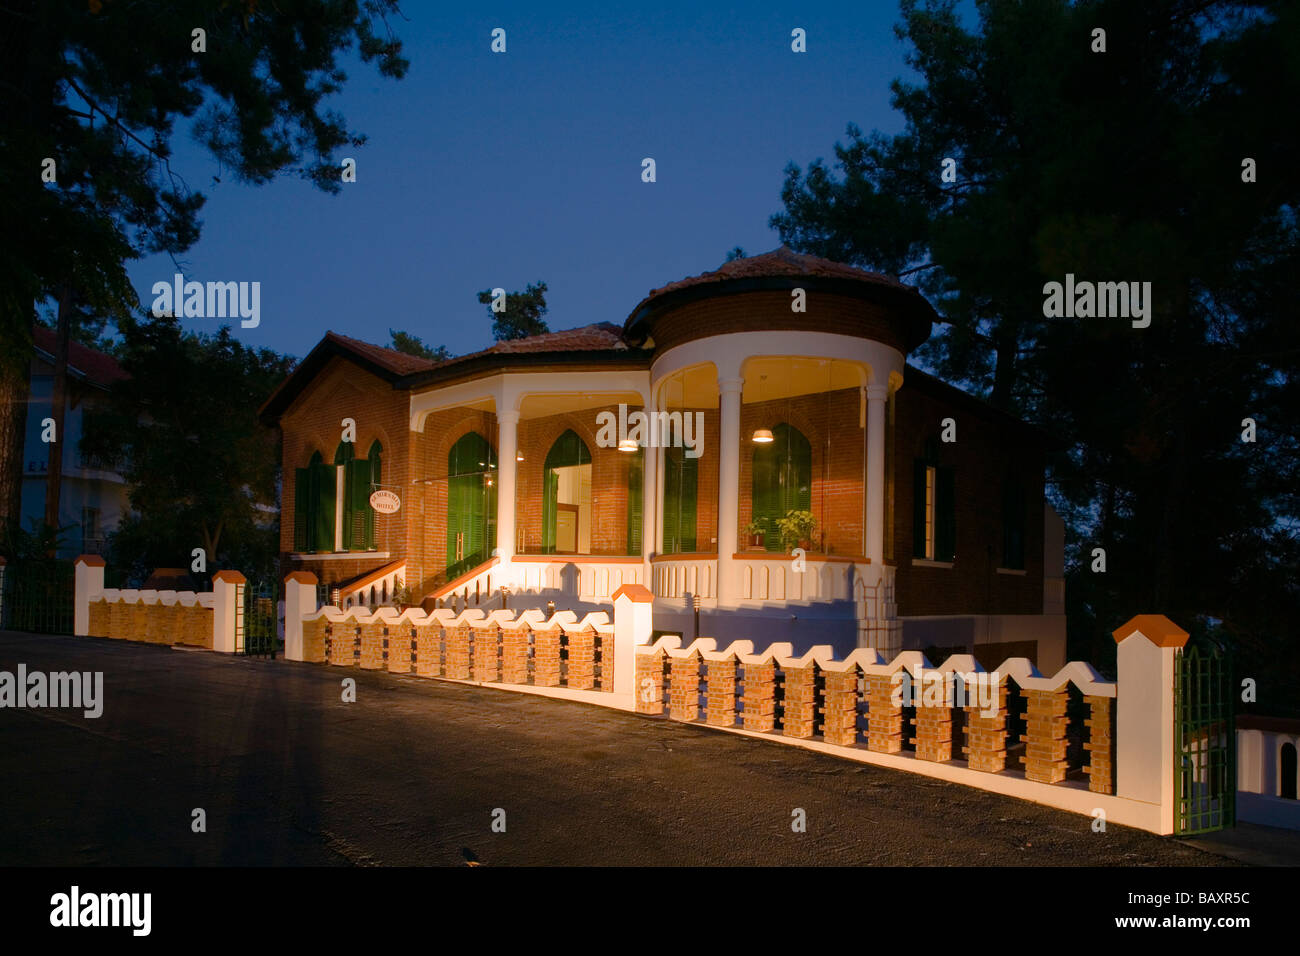 Semiramis Hotel, managed by Agis Jacovides, Pano Platres, Troodos mountains, Cyprus - Stock Image